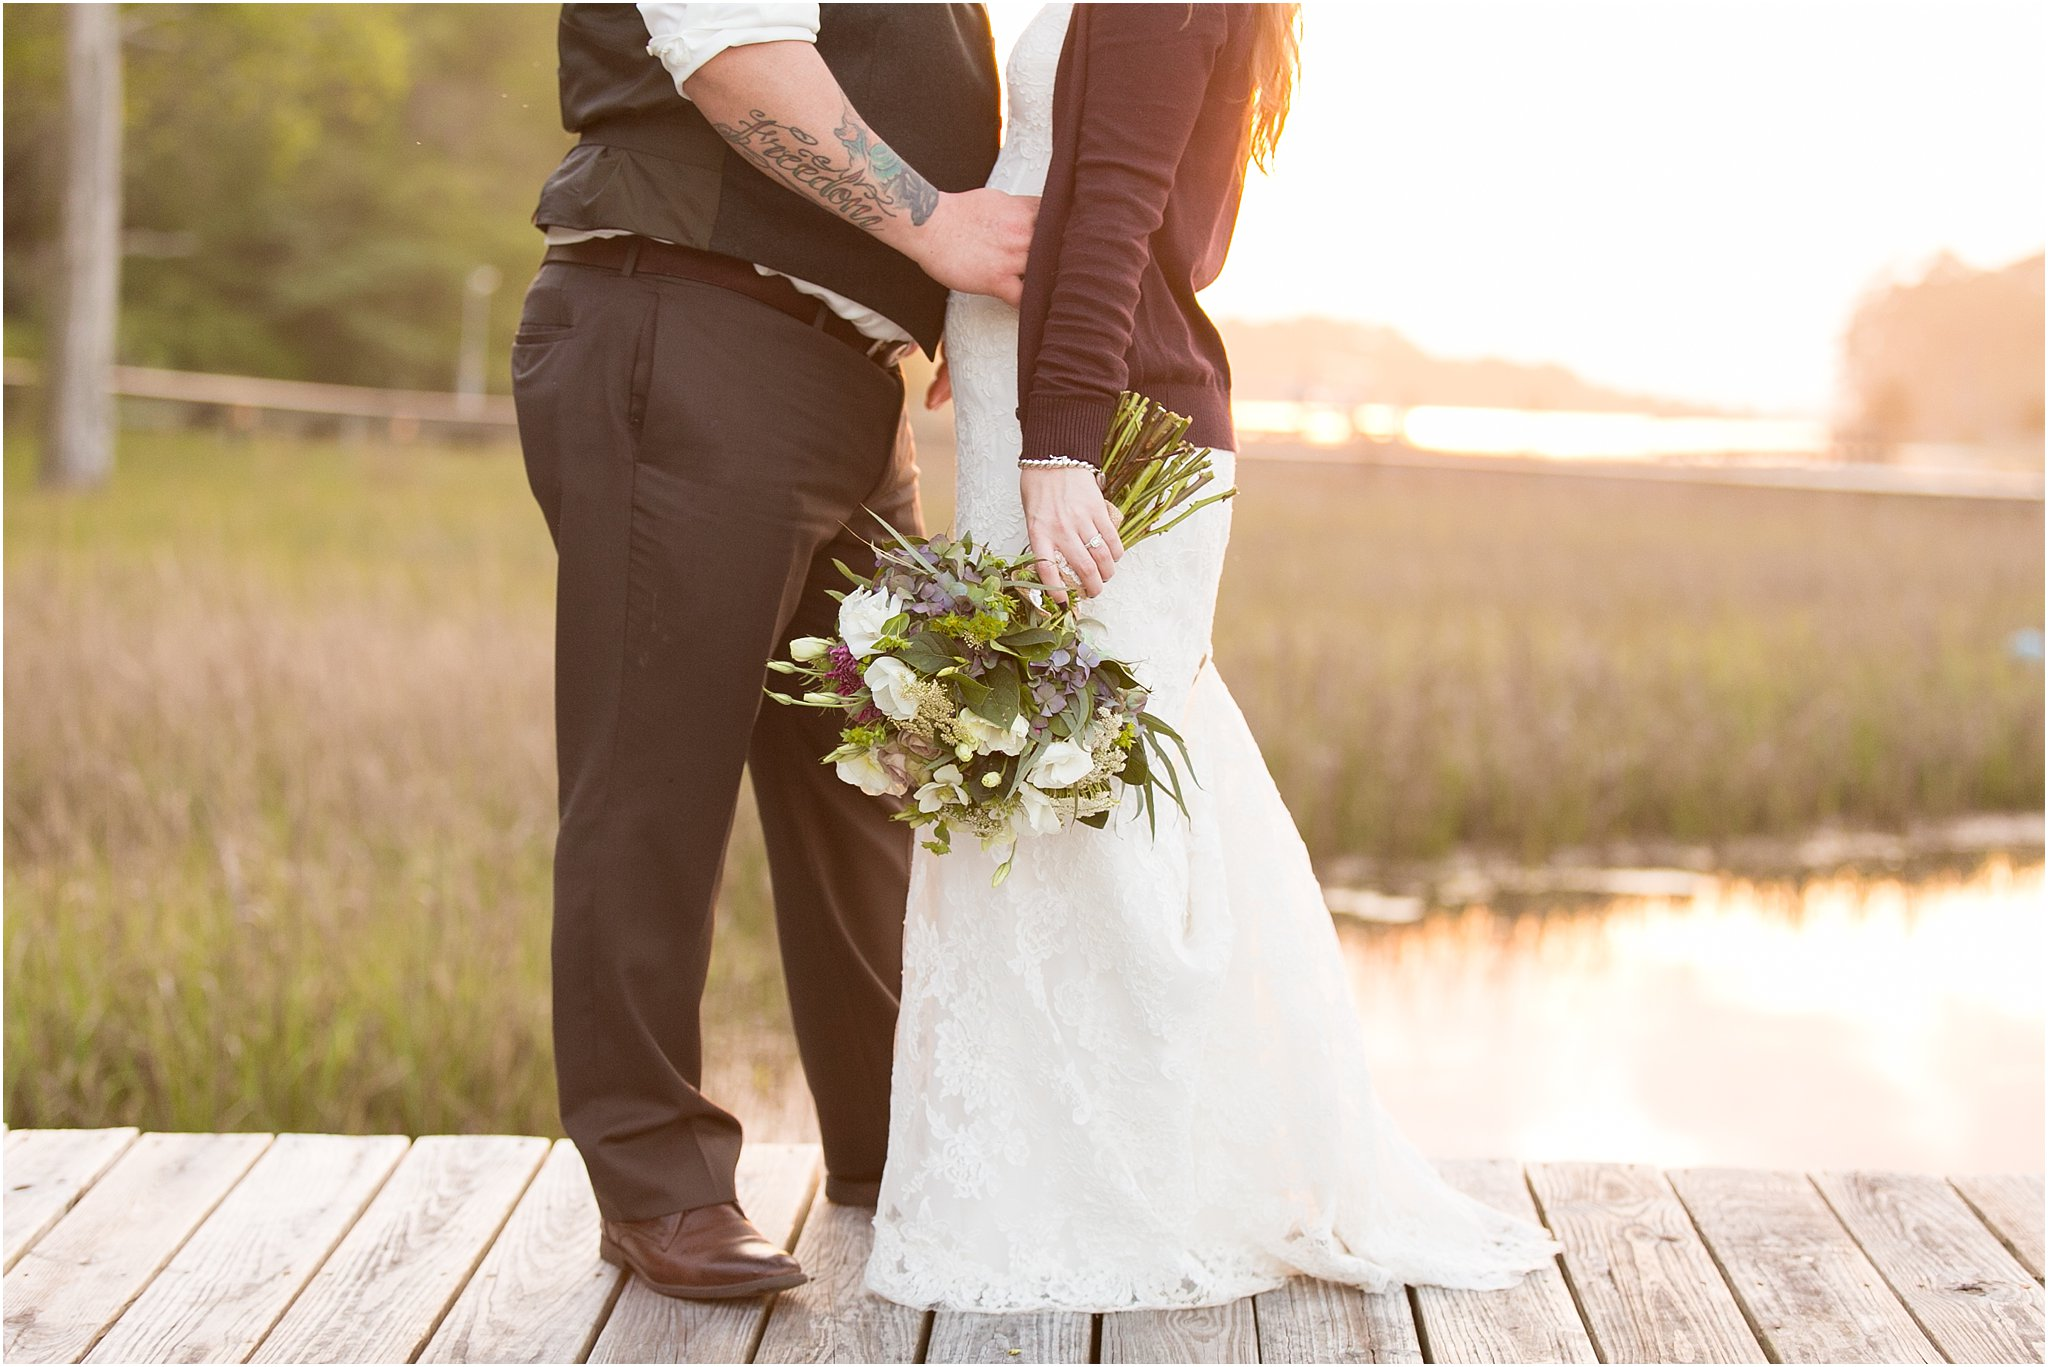 jessica_ryan_photography_virginia_virginiabeachwedding_bayislandvirginiabeach_backyardwedding_waterfrontwedding_intimatewedding_vintagewedding_1608